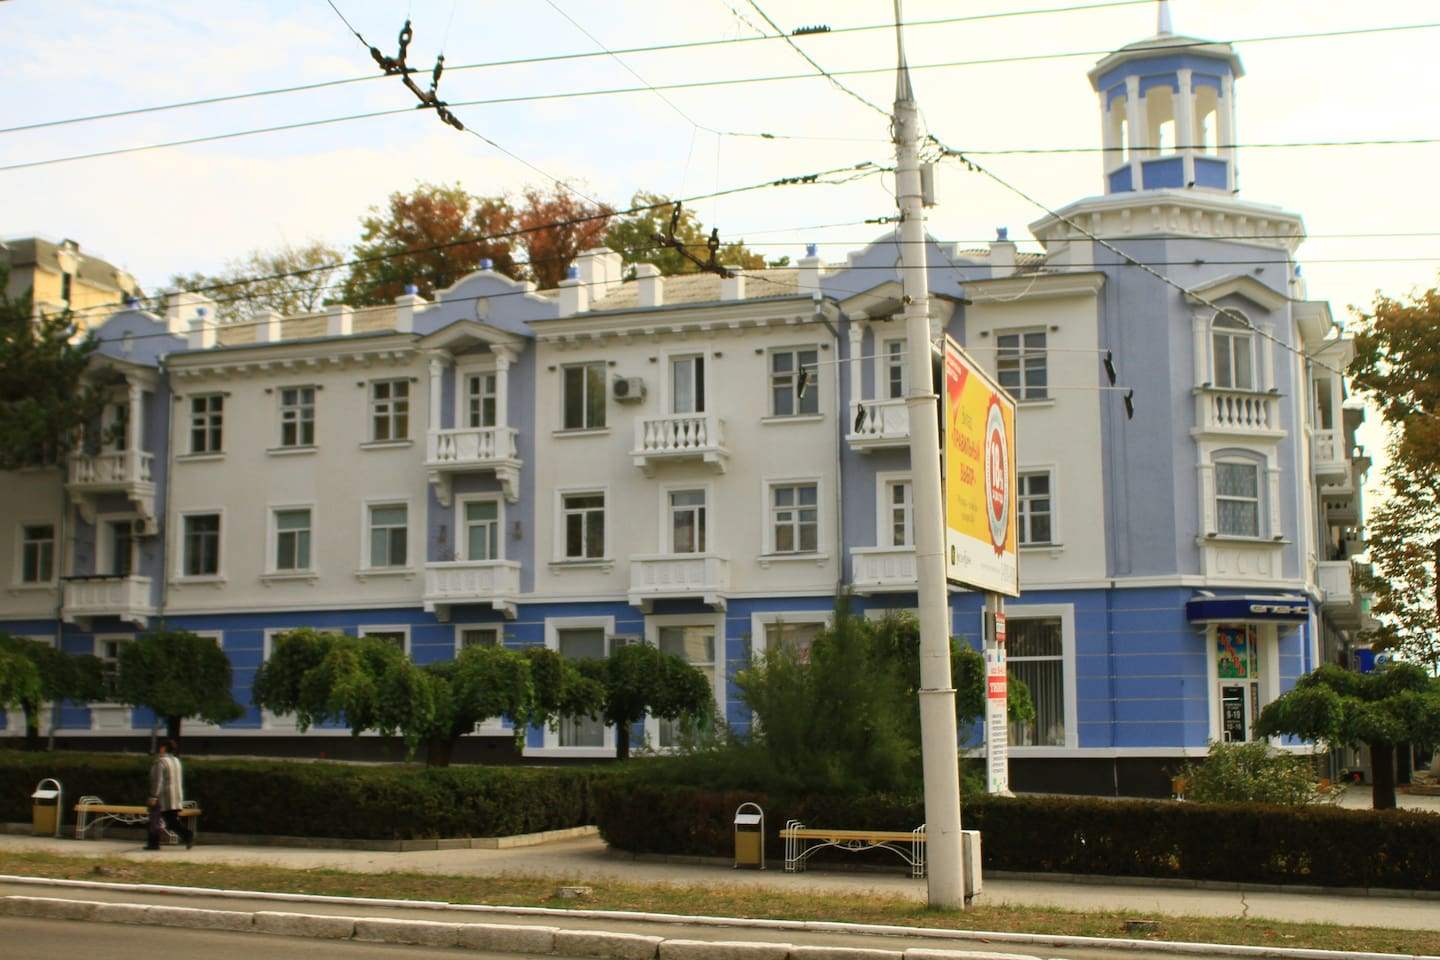 Historical building under state protection